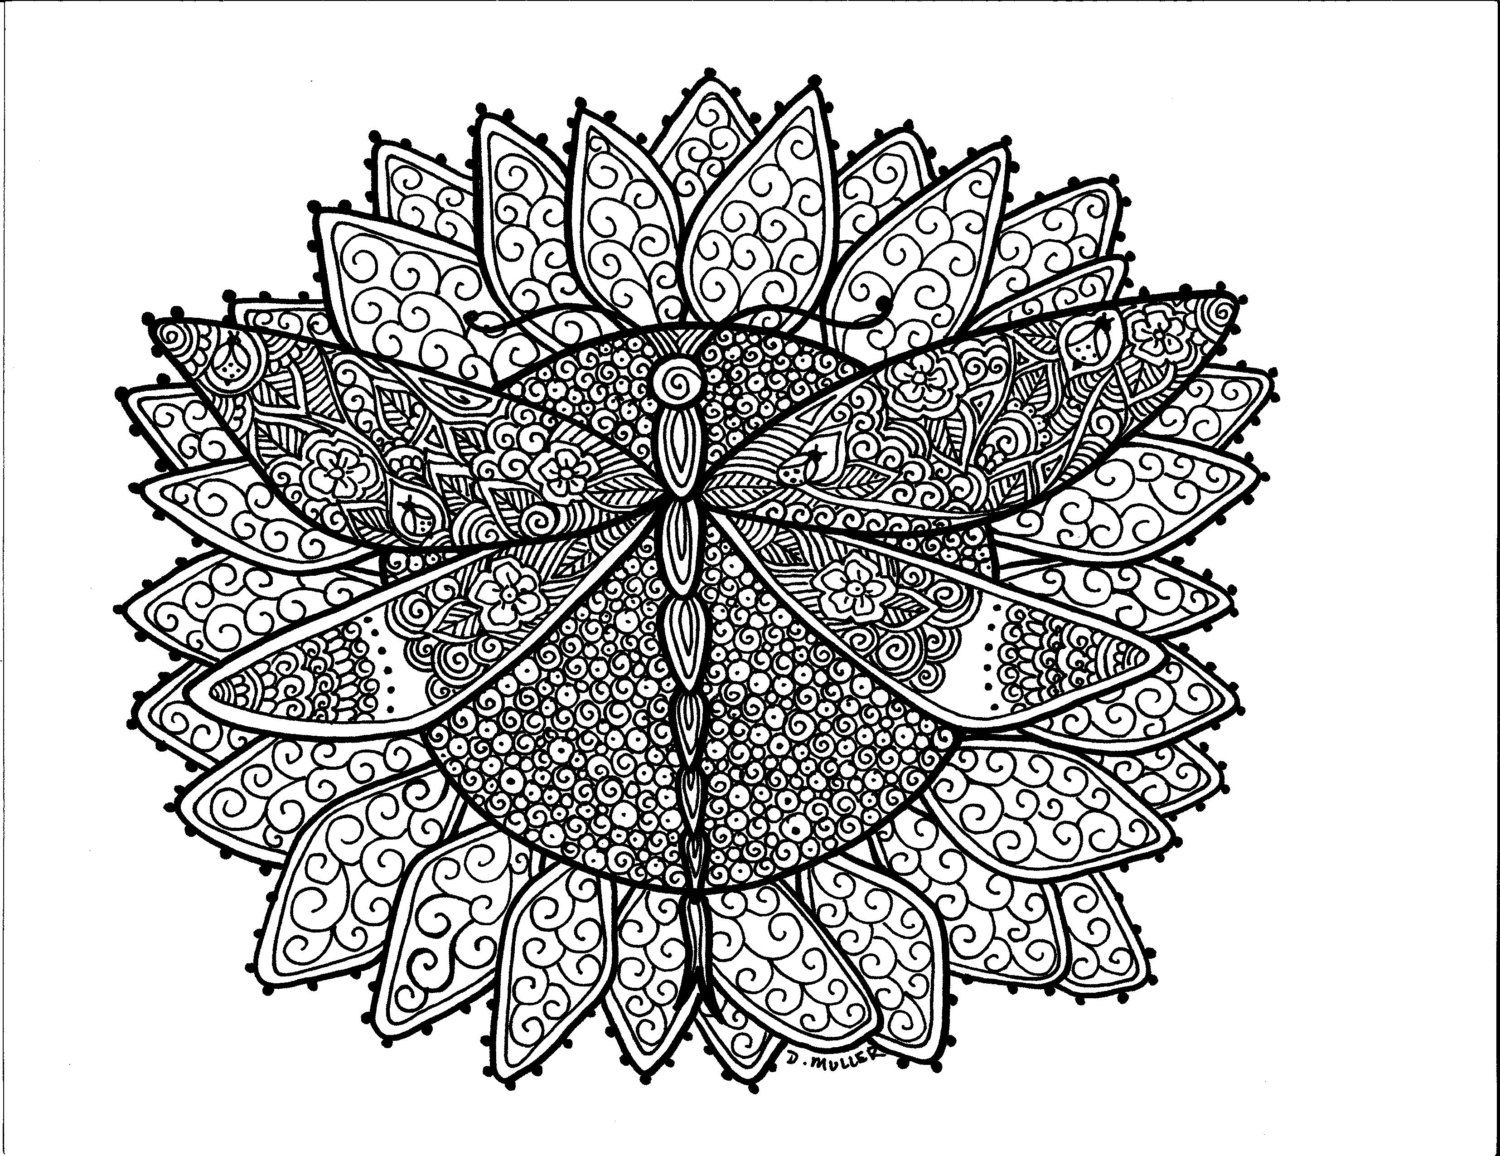 Instant Download Butterfly And Dragonfly Art To Color 5 Pages Of Coloring Fun In 2020 Mandala Coloring Pages Coloring Pages Henna Butterfly